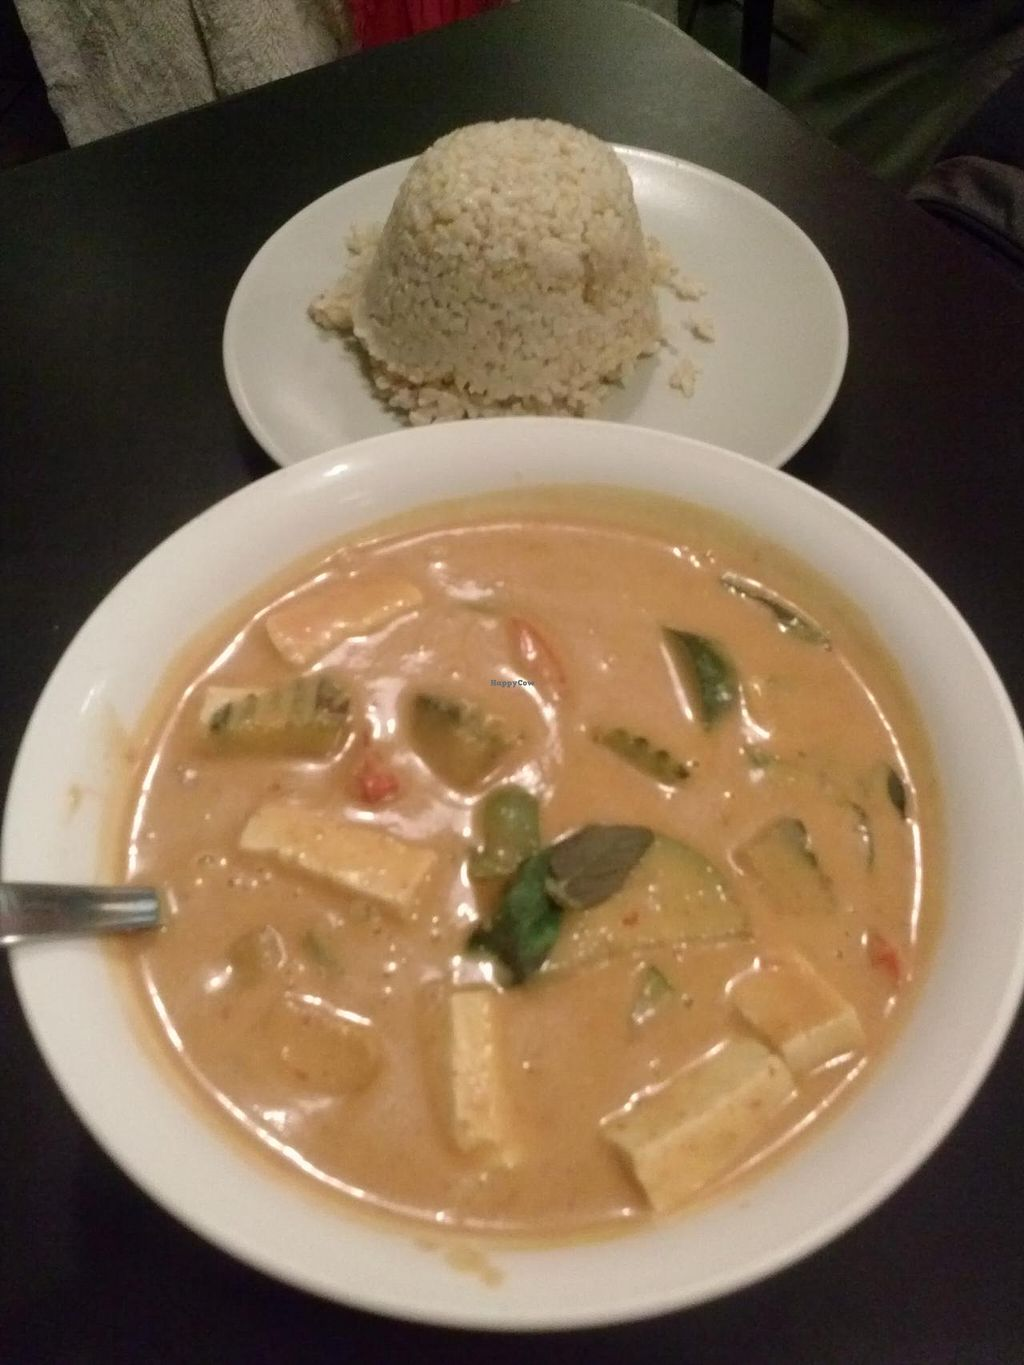 """Photo of CLOSED: The Vegan Joint - Hollywood  by <a href=""""/members/profile/Sonja%20and%20Dirk"""">Sonja and Dirk</a> <br/>pumpkin curry <br/> May 2, 2014  - <a href='/contact/abuse/image/35252/69148'>Report</a>"""